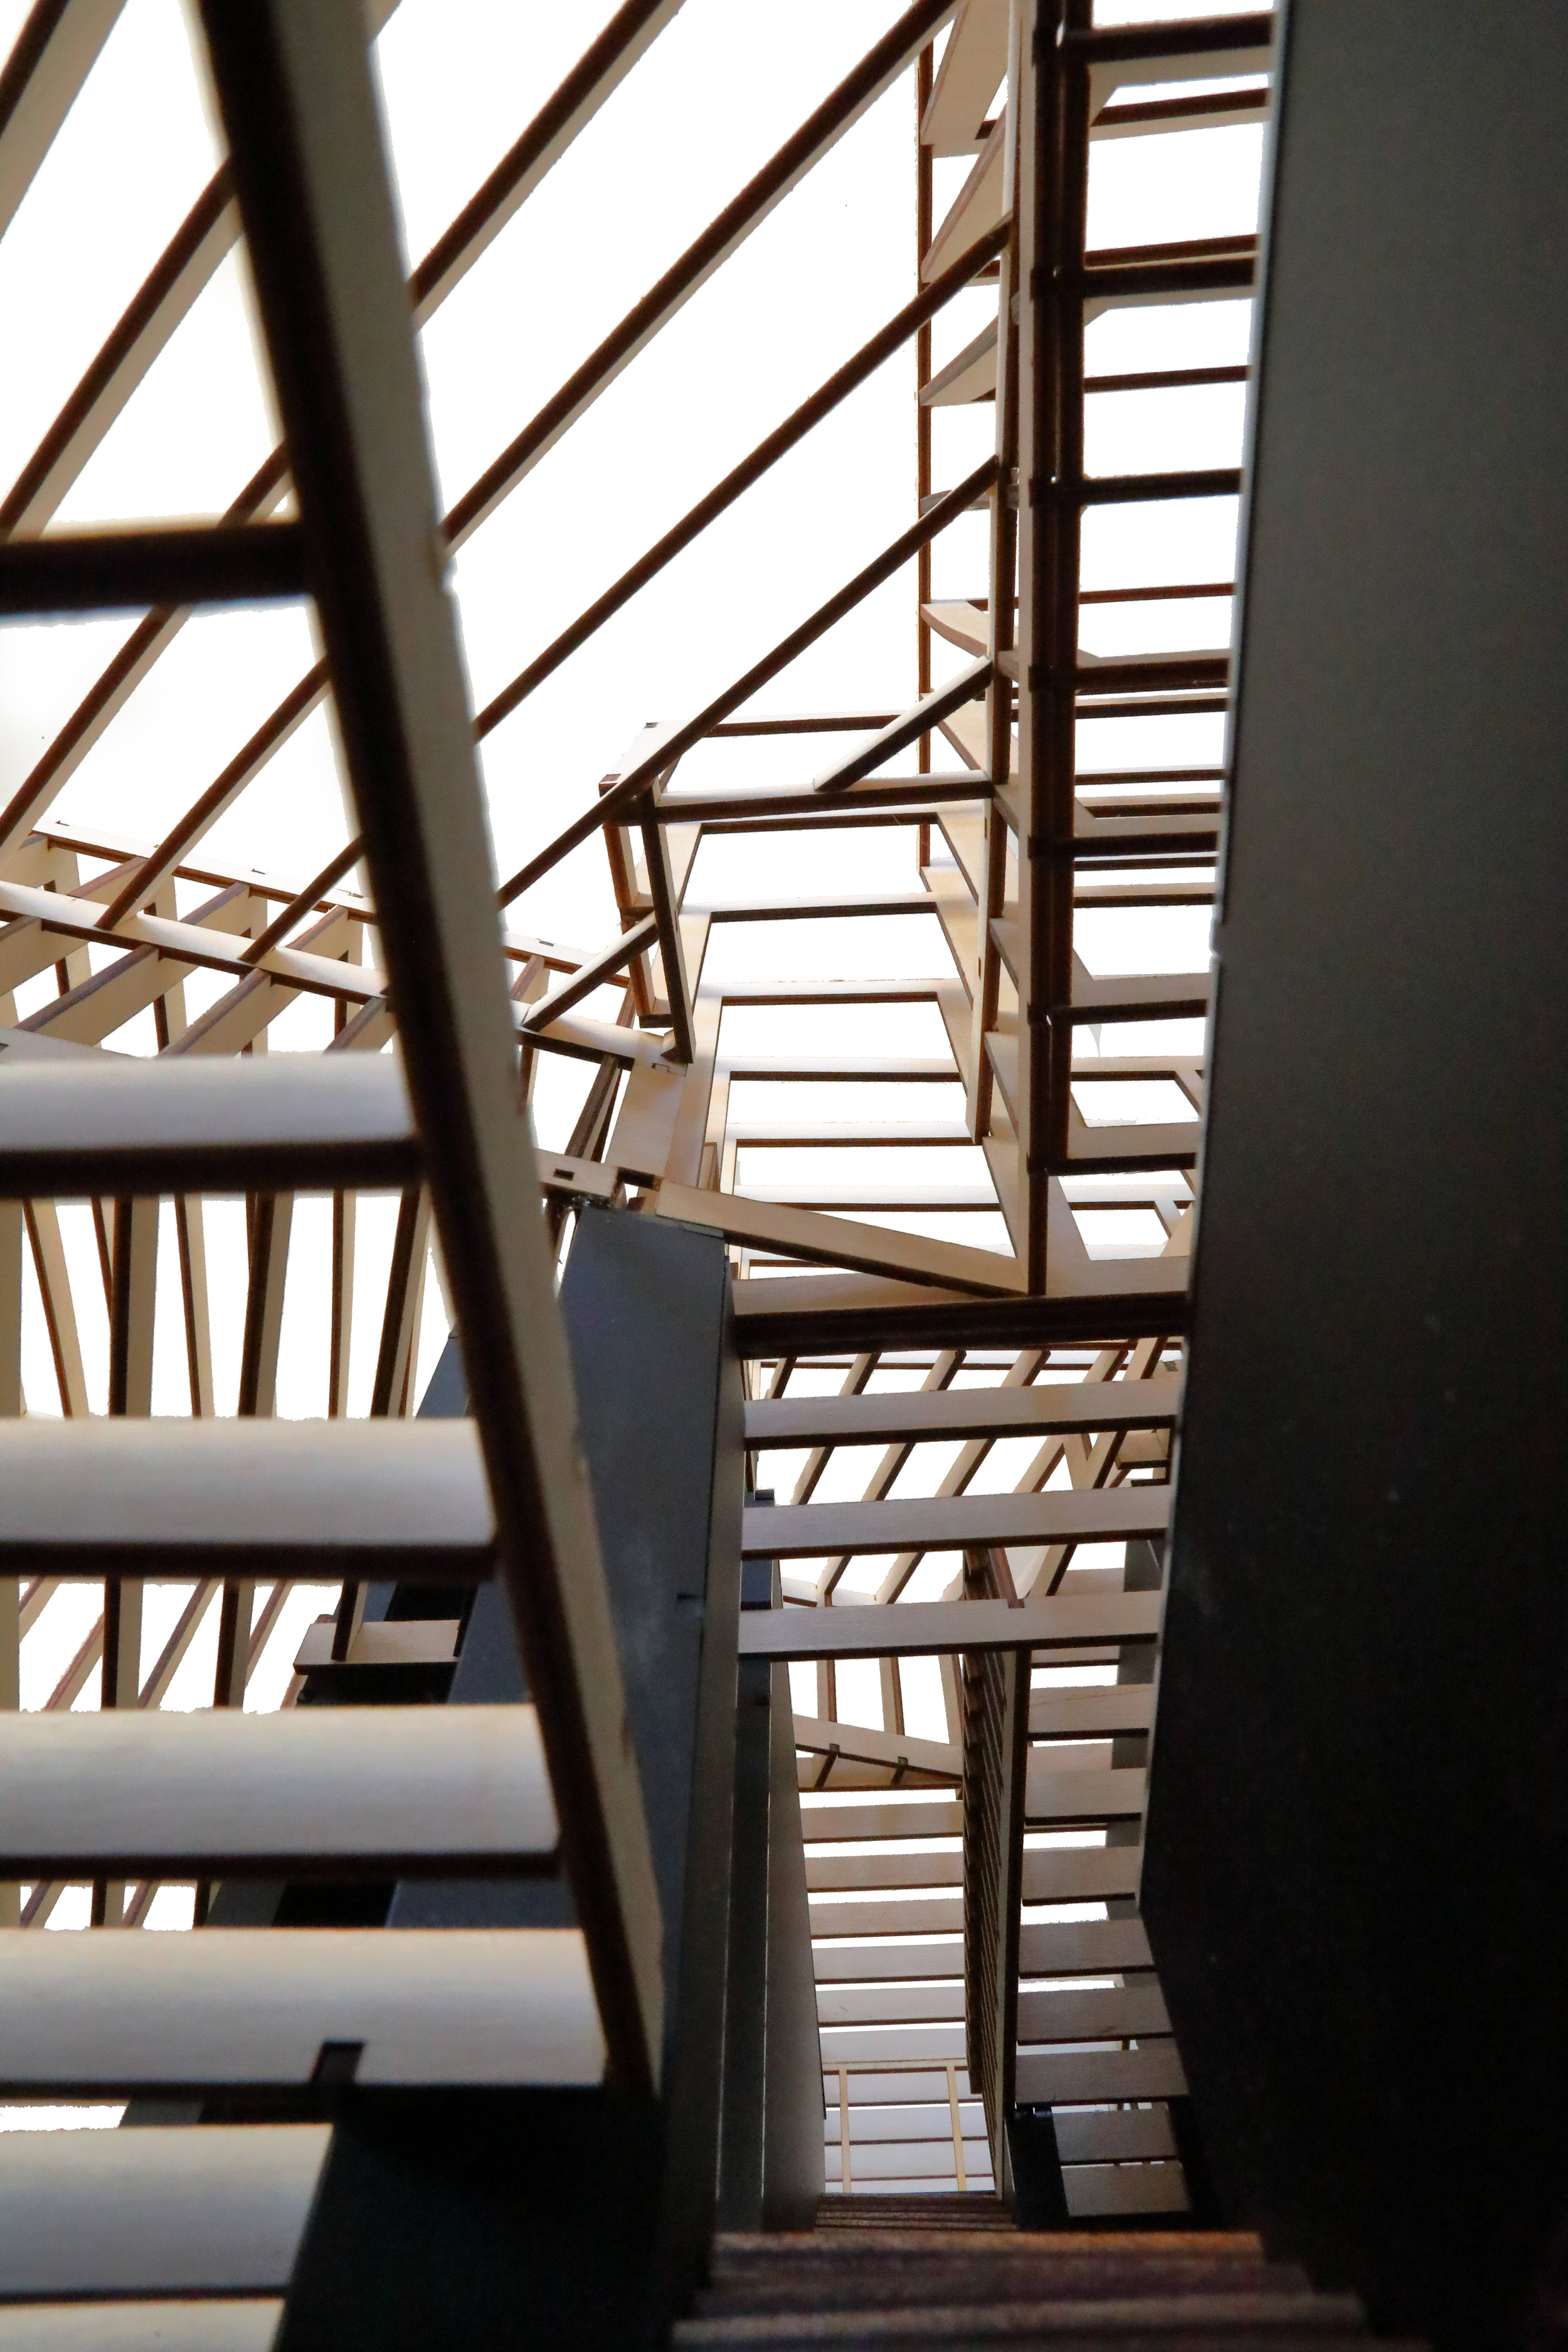 View up through all three floors showing optional top floor interior balcony